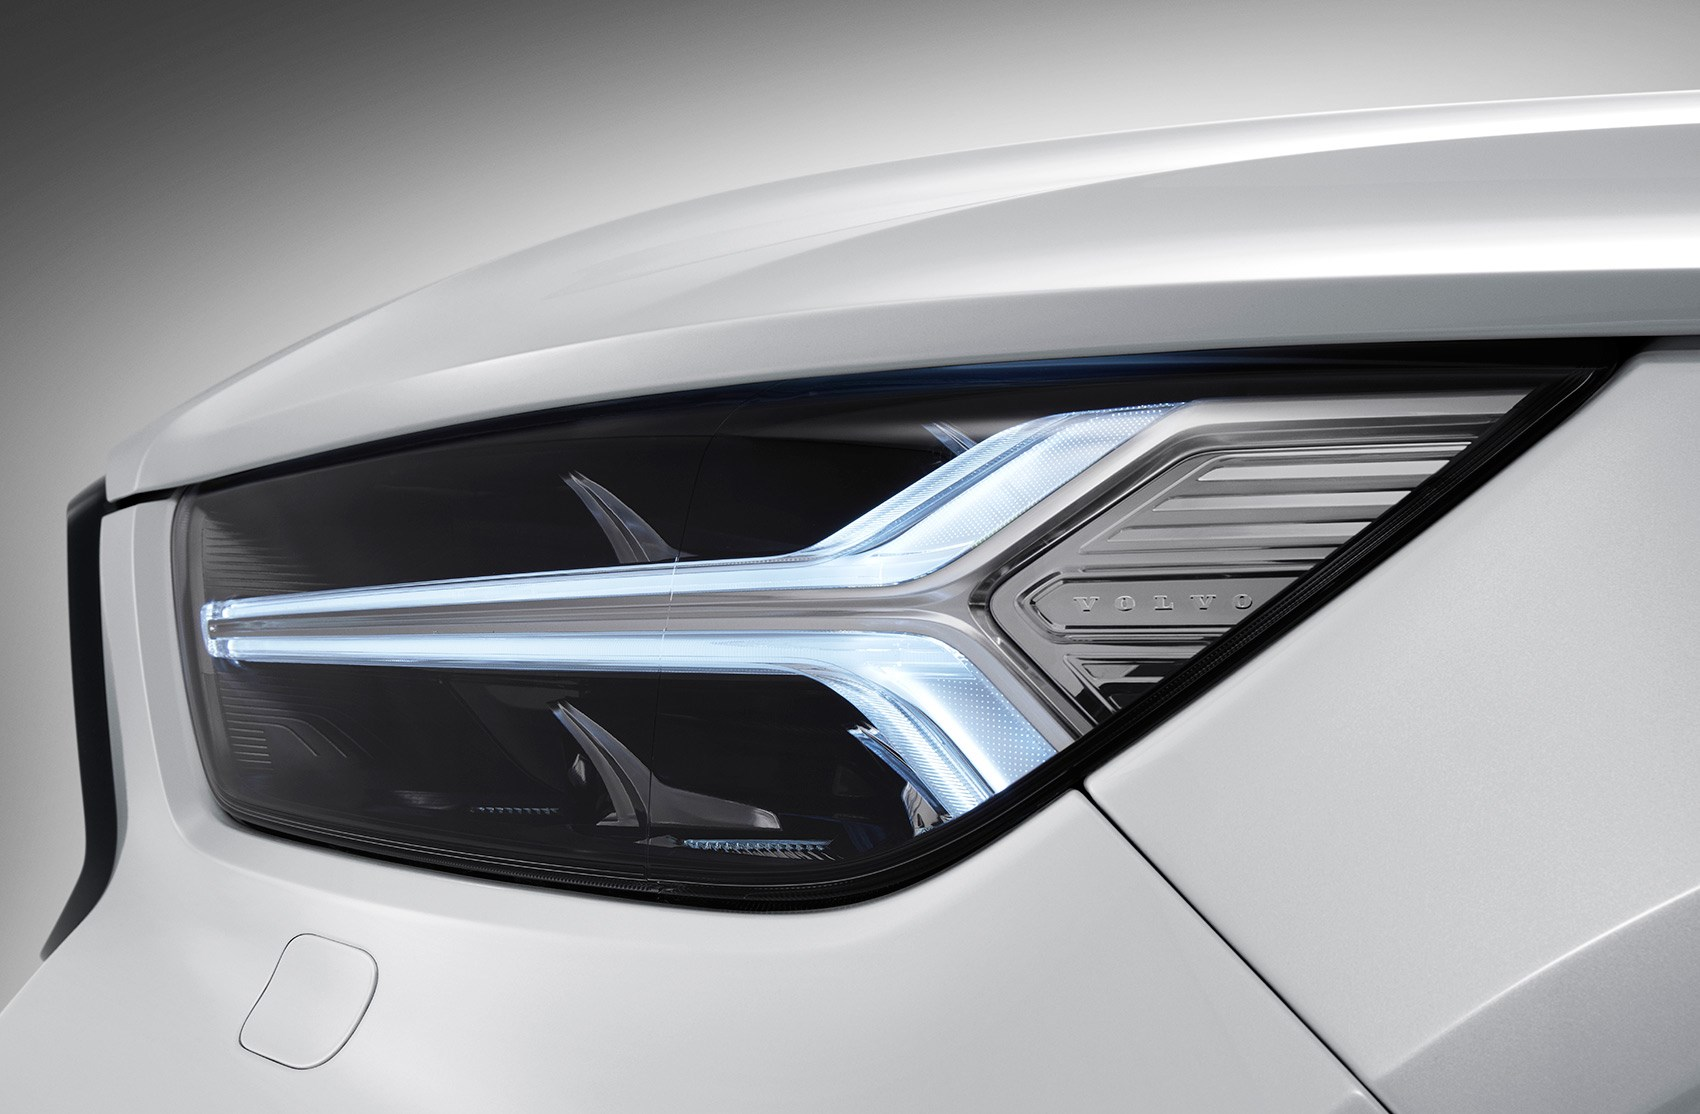 Volvo's Thor's Hammer headlamps